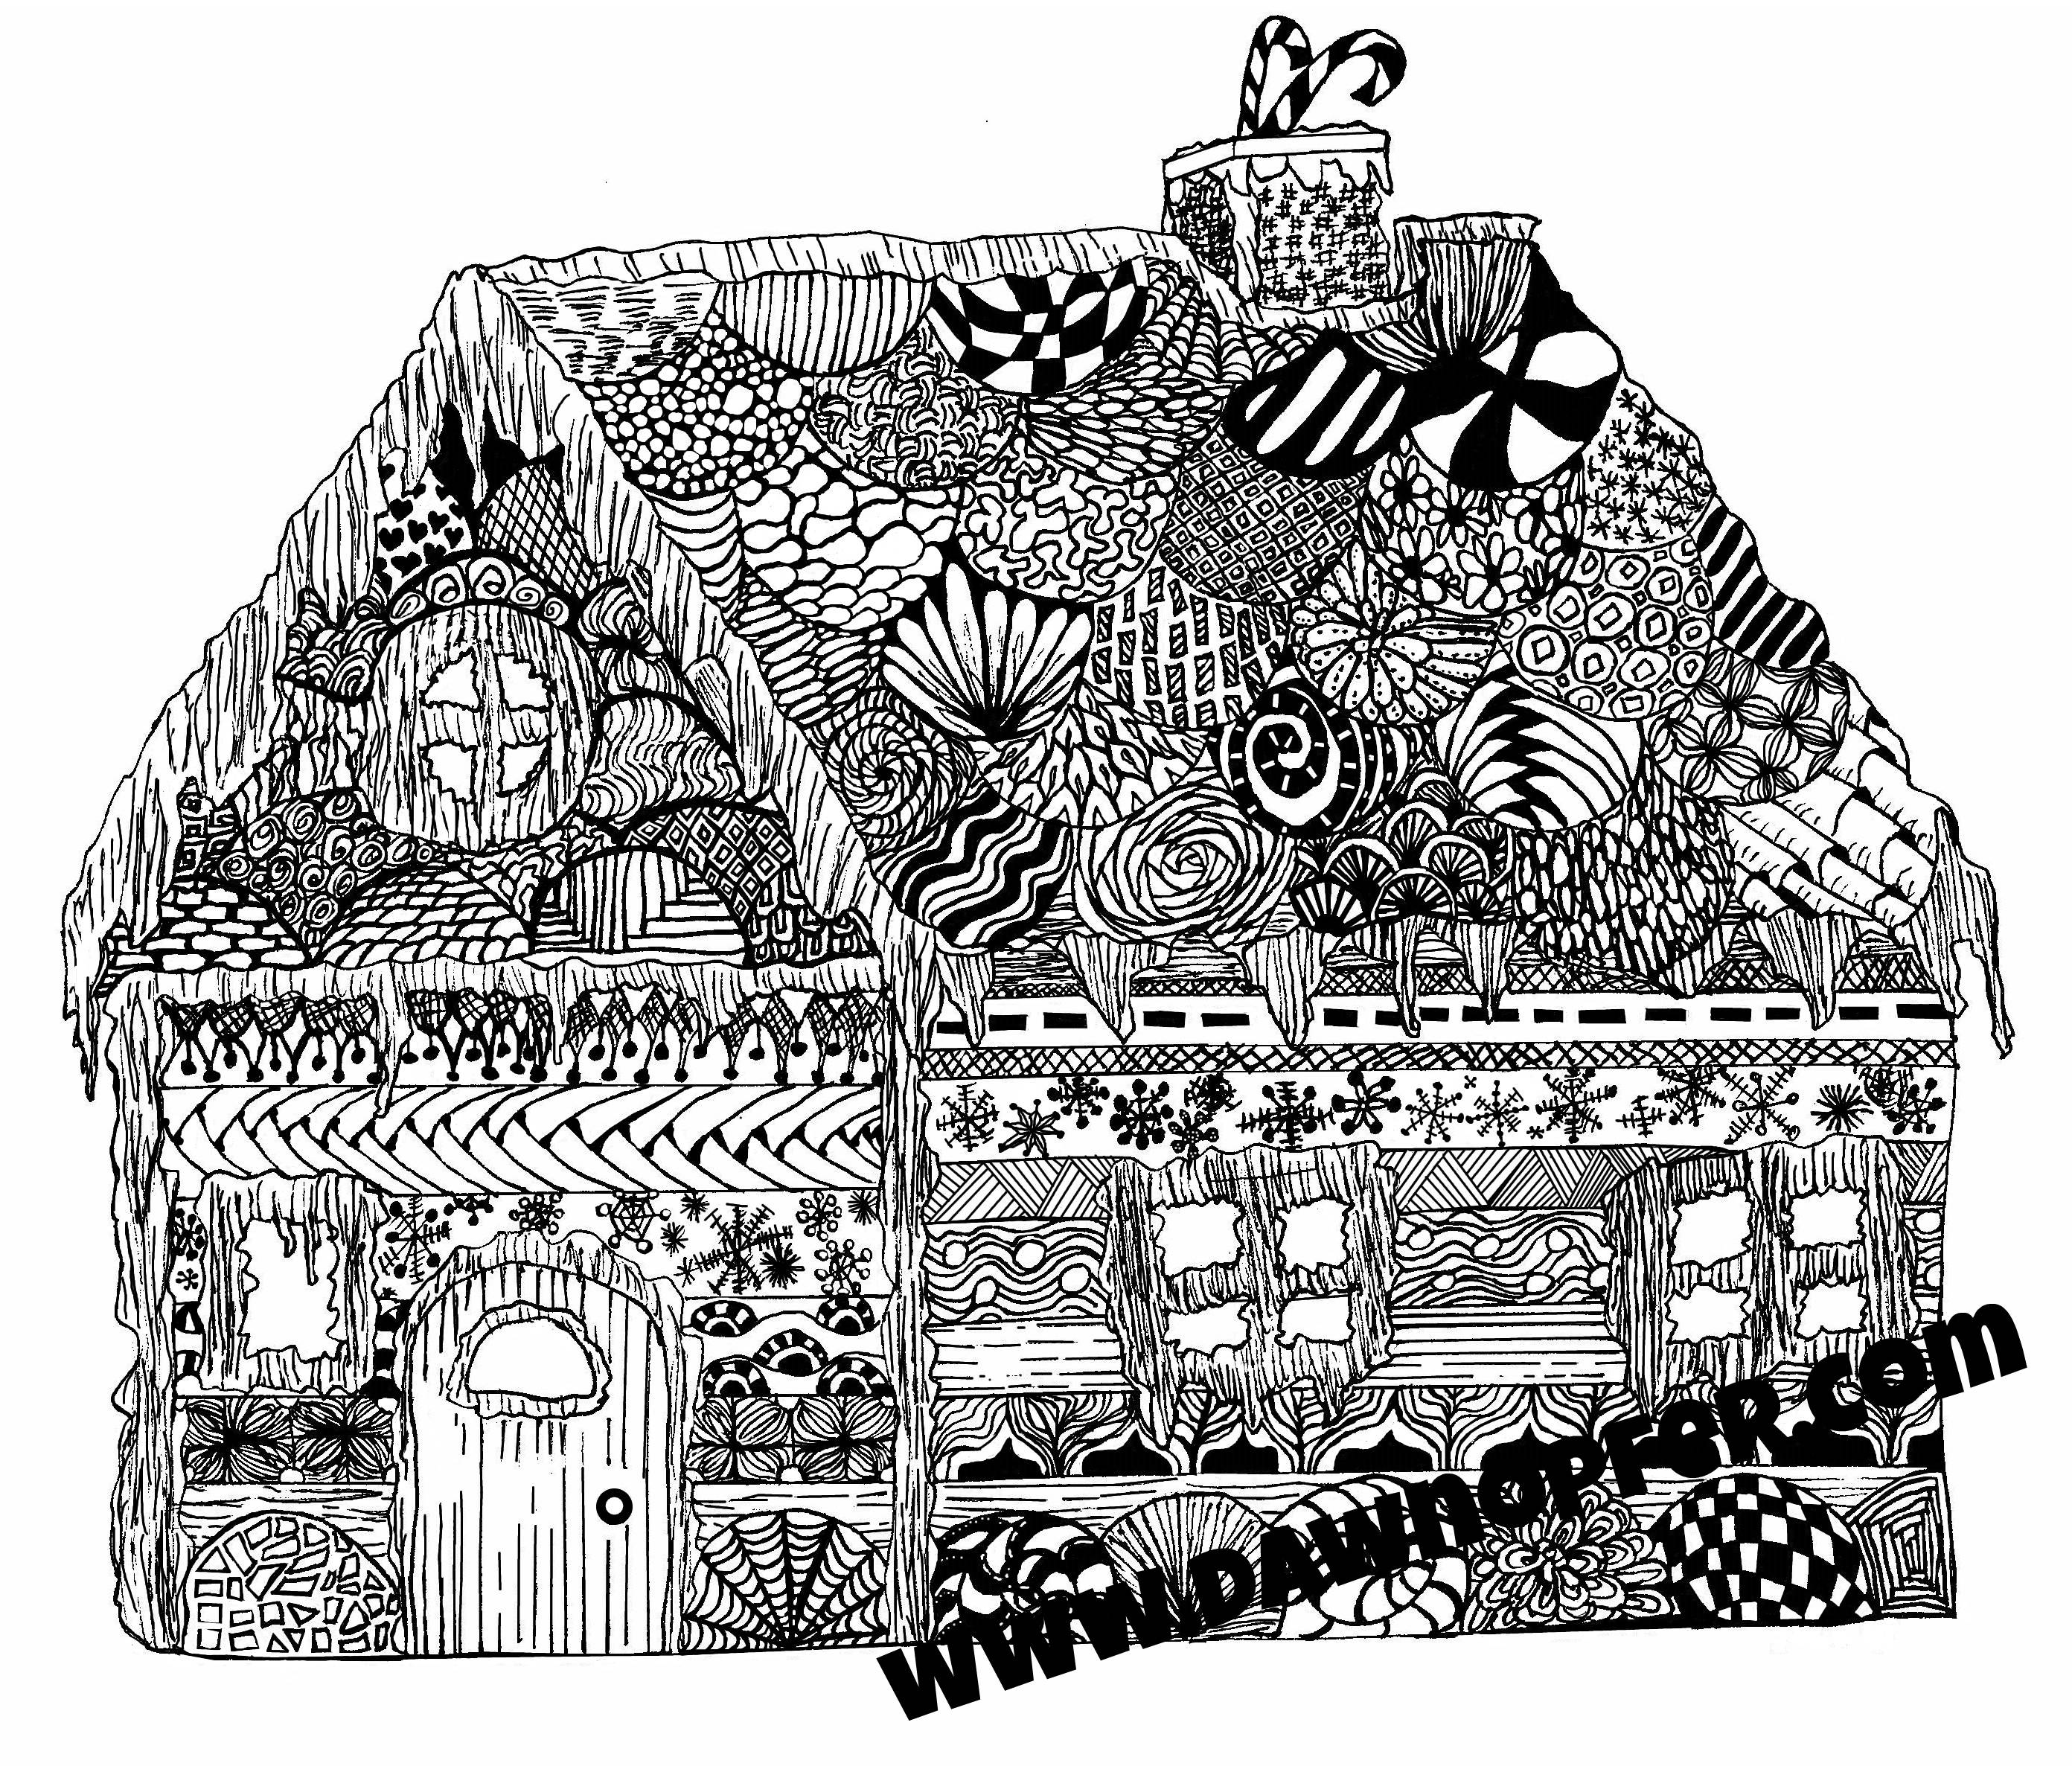 gingerbread house colouring pages gingerbread house colouring pages gingerbread house colouring pages